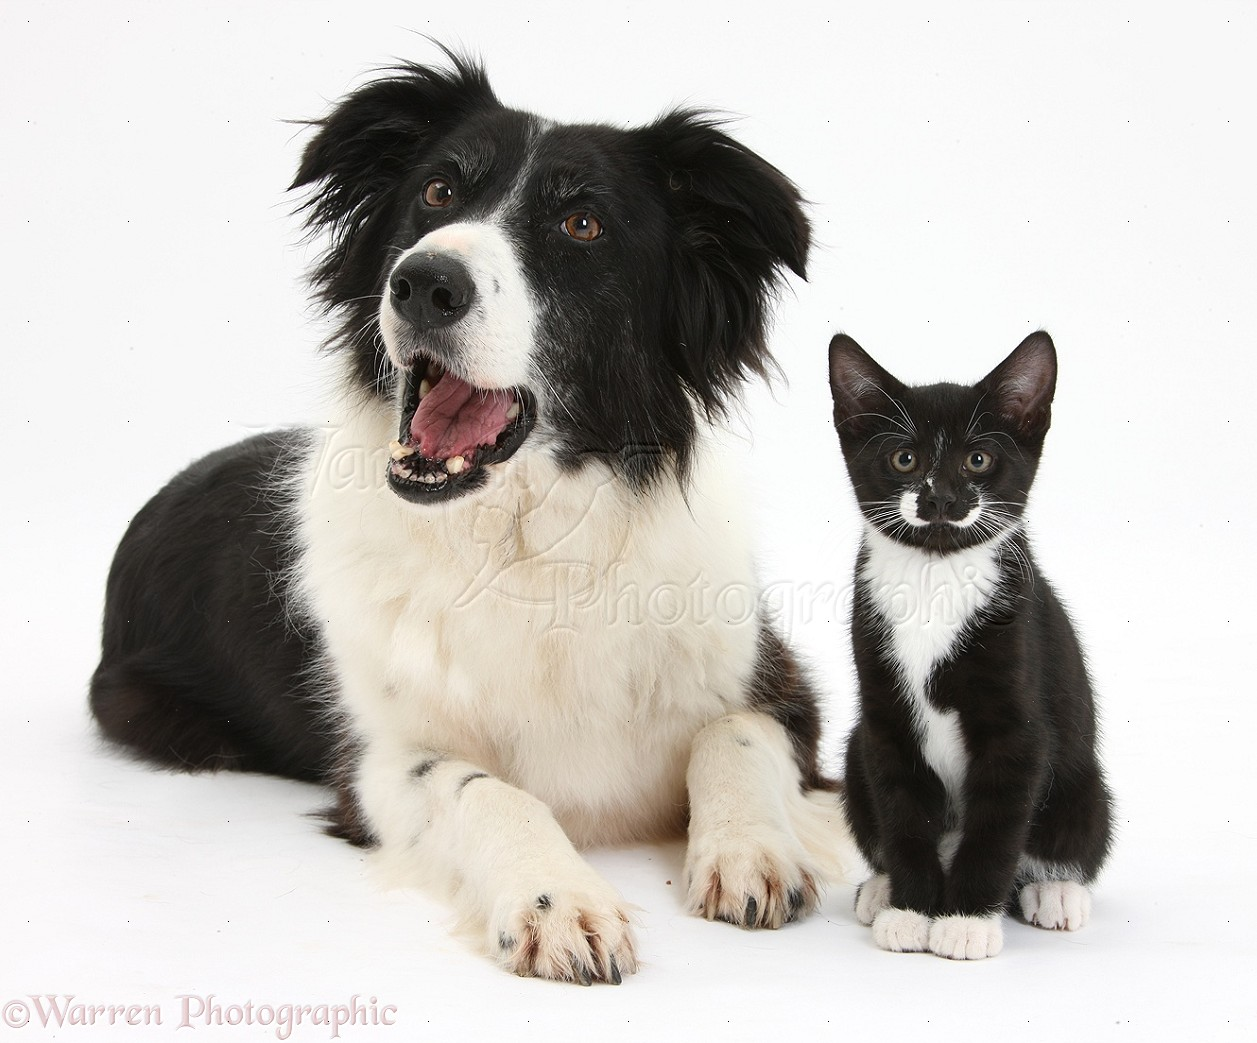 Pictures Of Dogs And Cats In Black And White